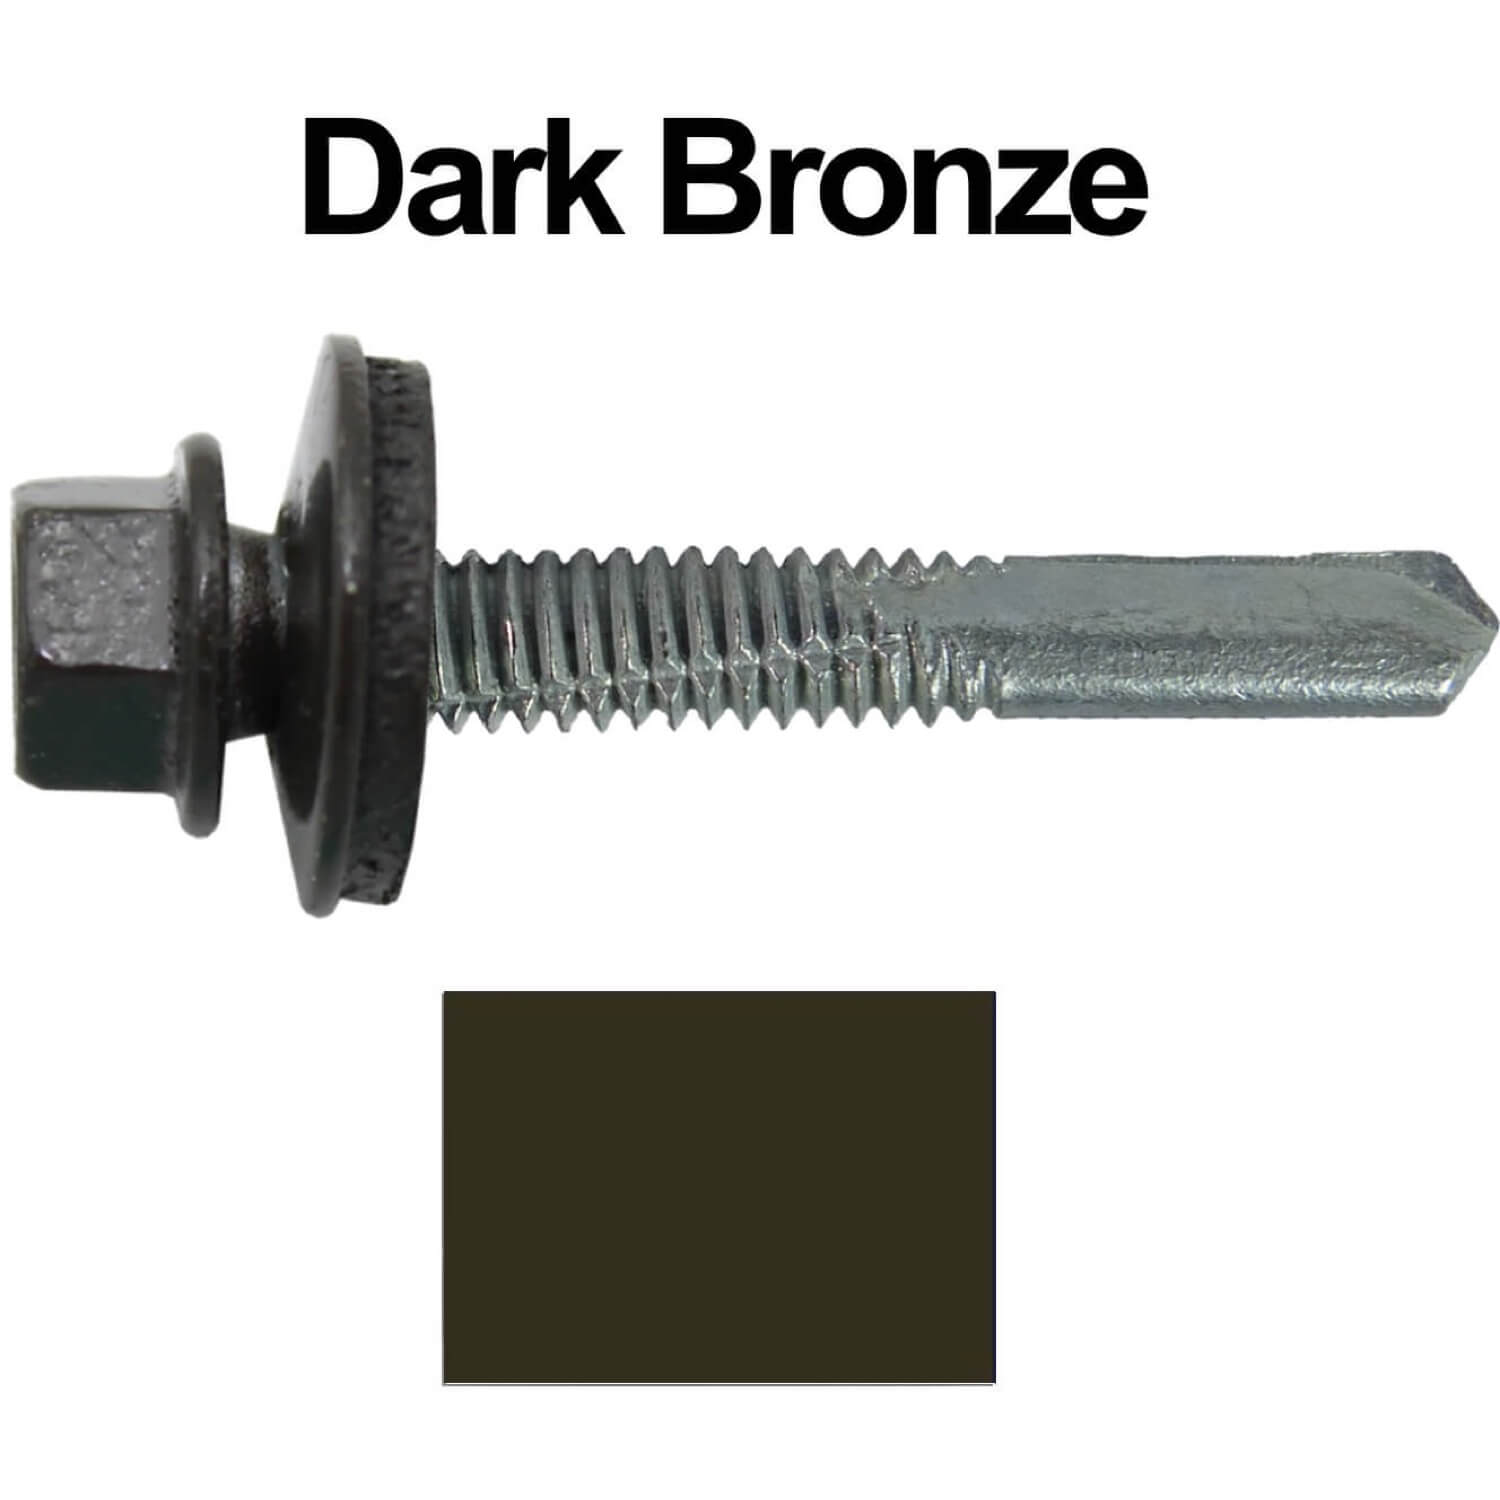 9//16 EPDM Washer #12x1-1//2 Metal to Metal Type #5 Galvanized//ZINC Hex Head Drill Point Metal to Metal Roofing Screws